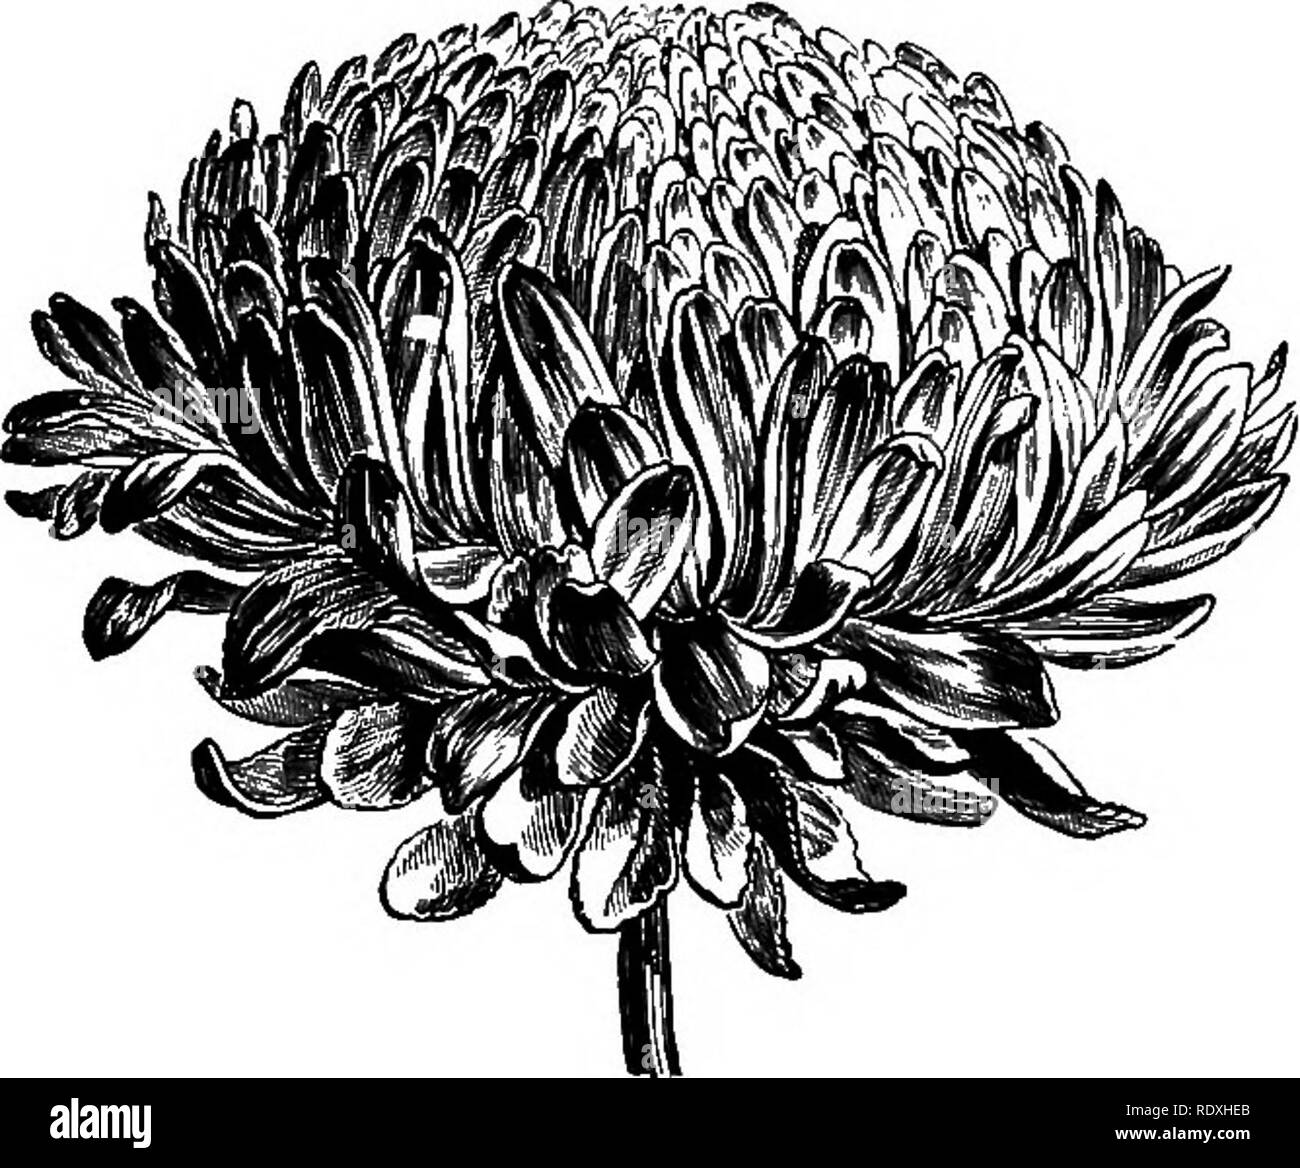 Form Filling Black And White Stock Photos Images Alamy